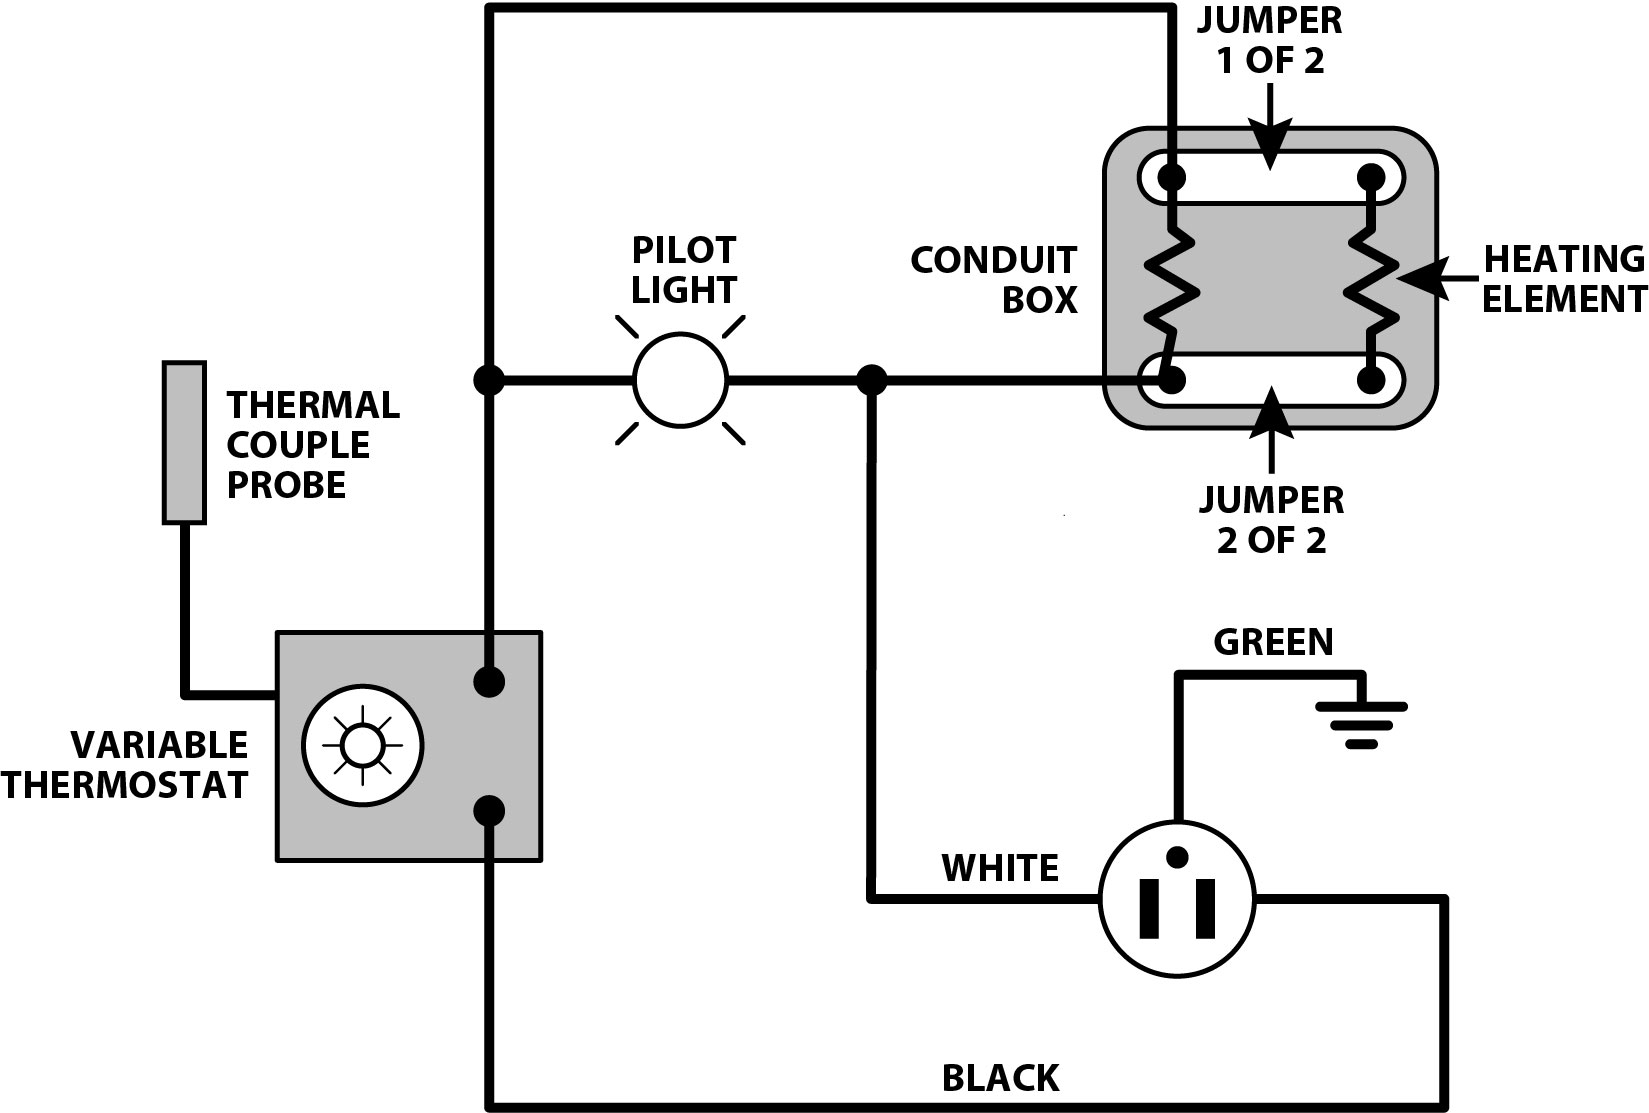 120v Vs 240v Wiring Diagram : 27 Wiring Diagram Images